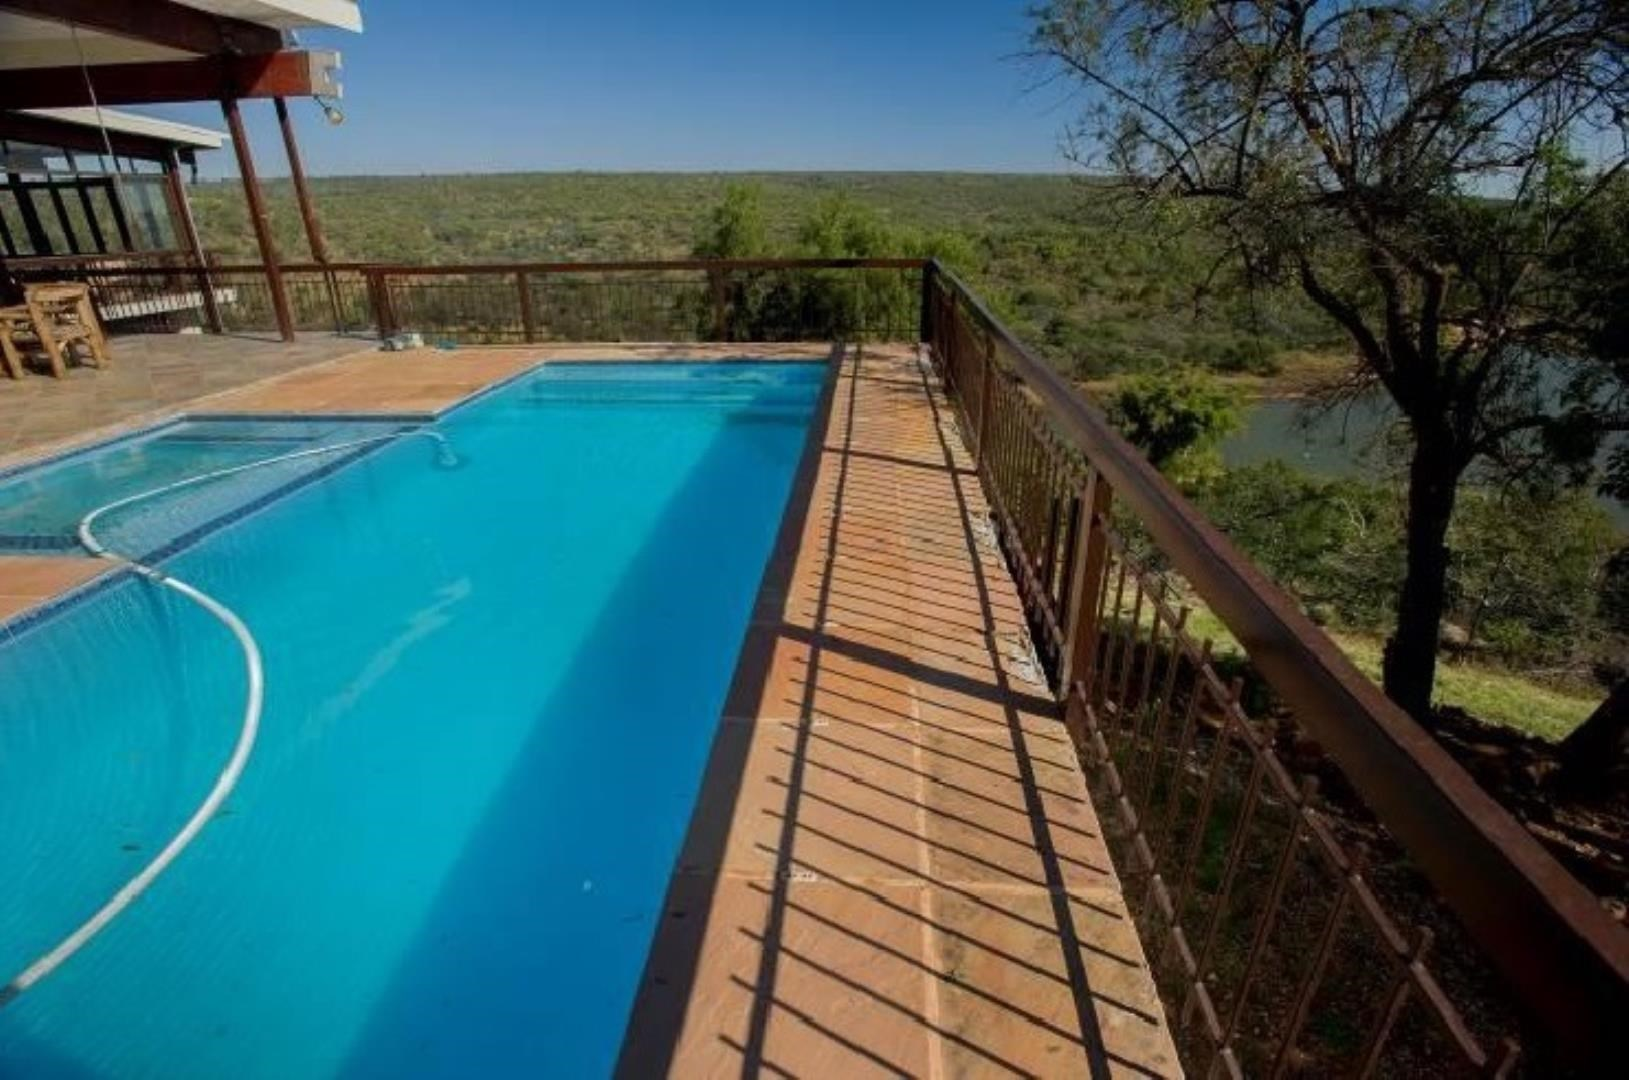 7 Bedroom Game Farm for Sale in Mookgopong